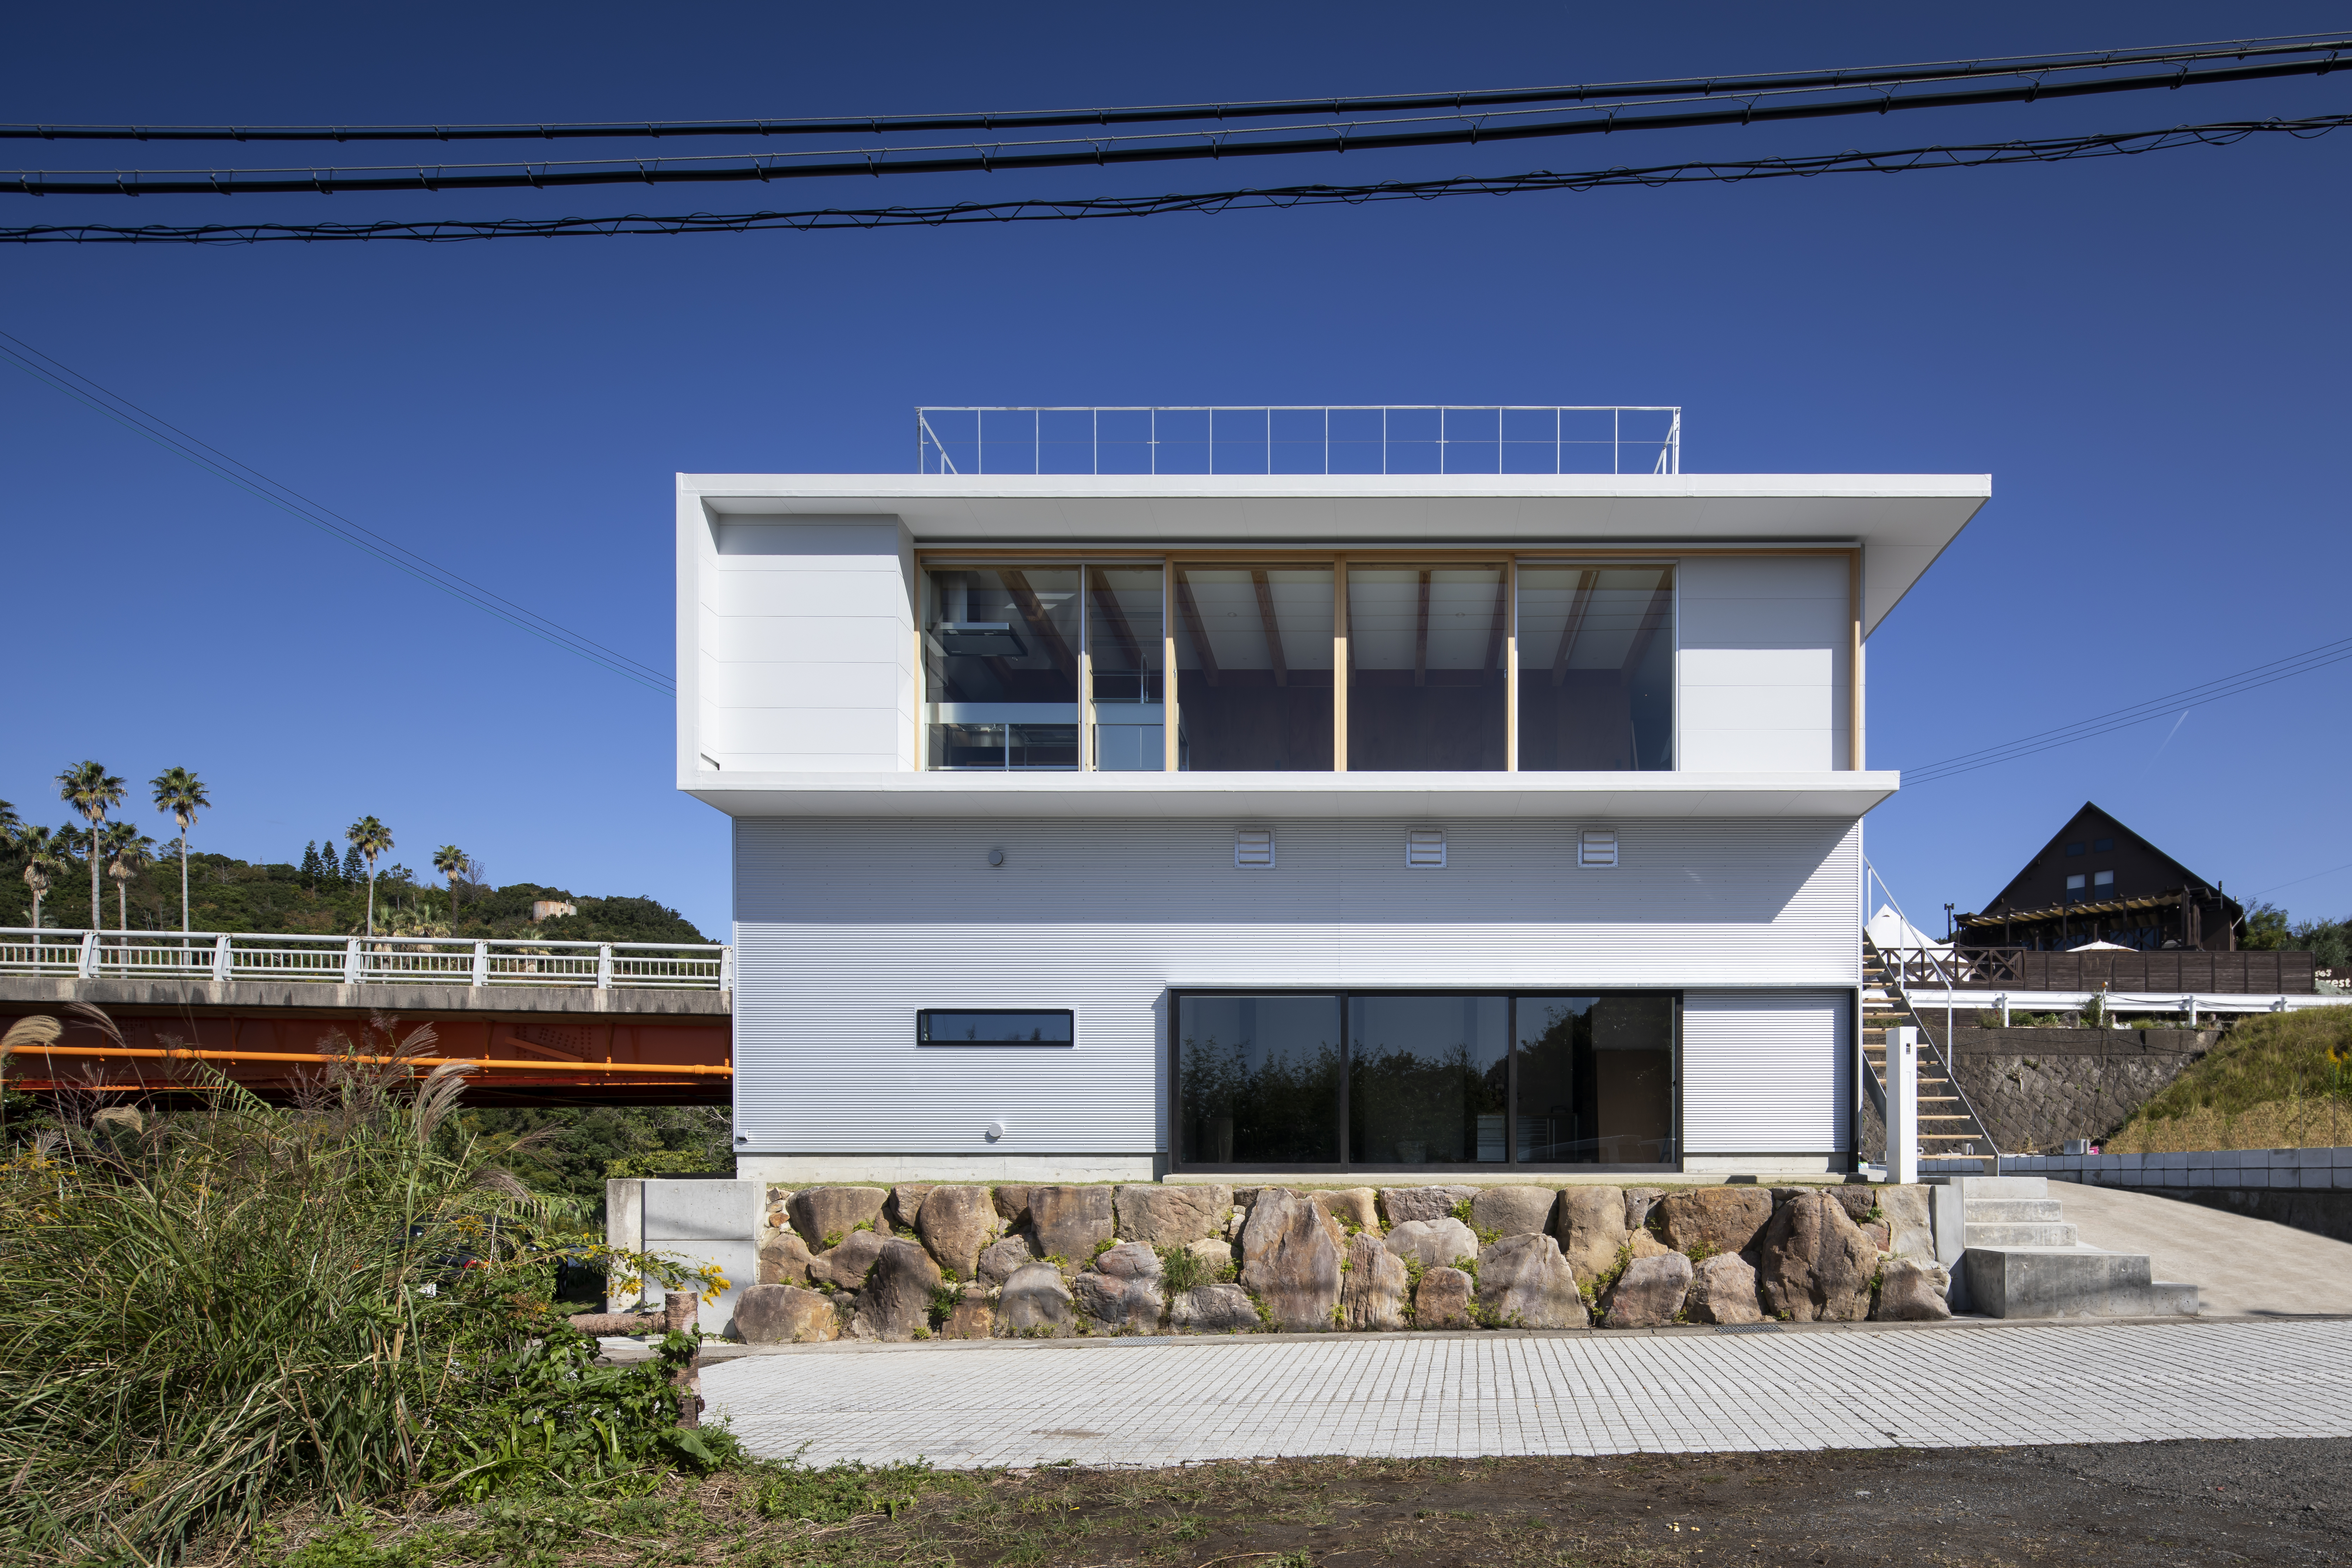 Front Facade with industrial material (1F: Galvalume corrugated sheet 2F: Fiber cement siding)